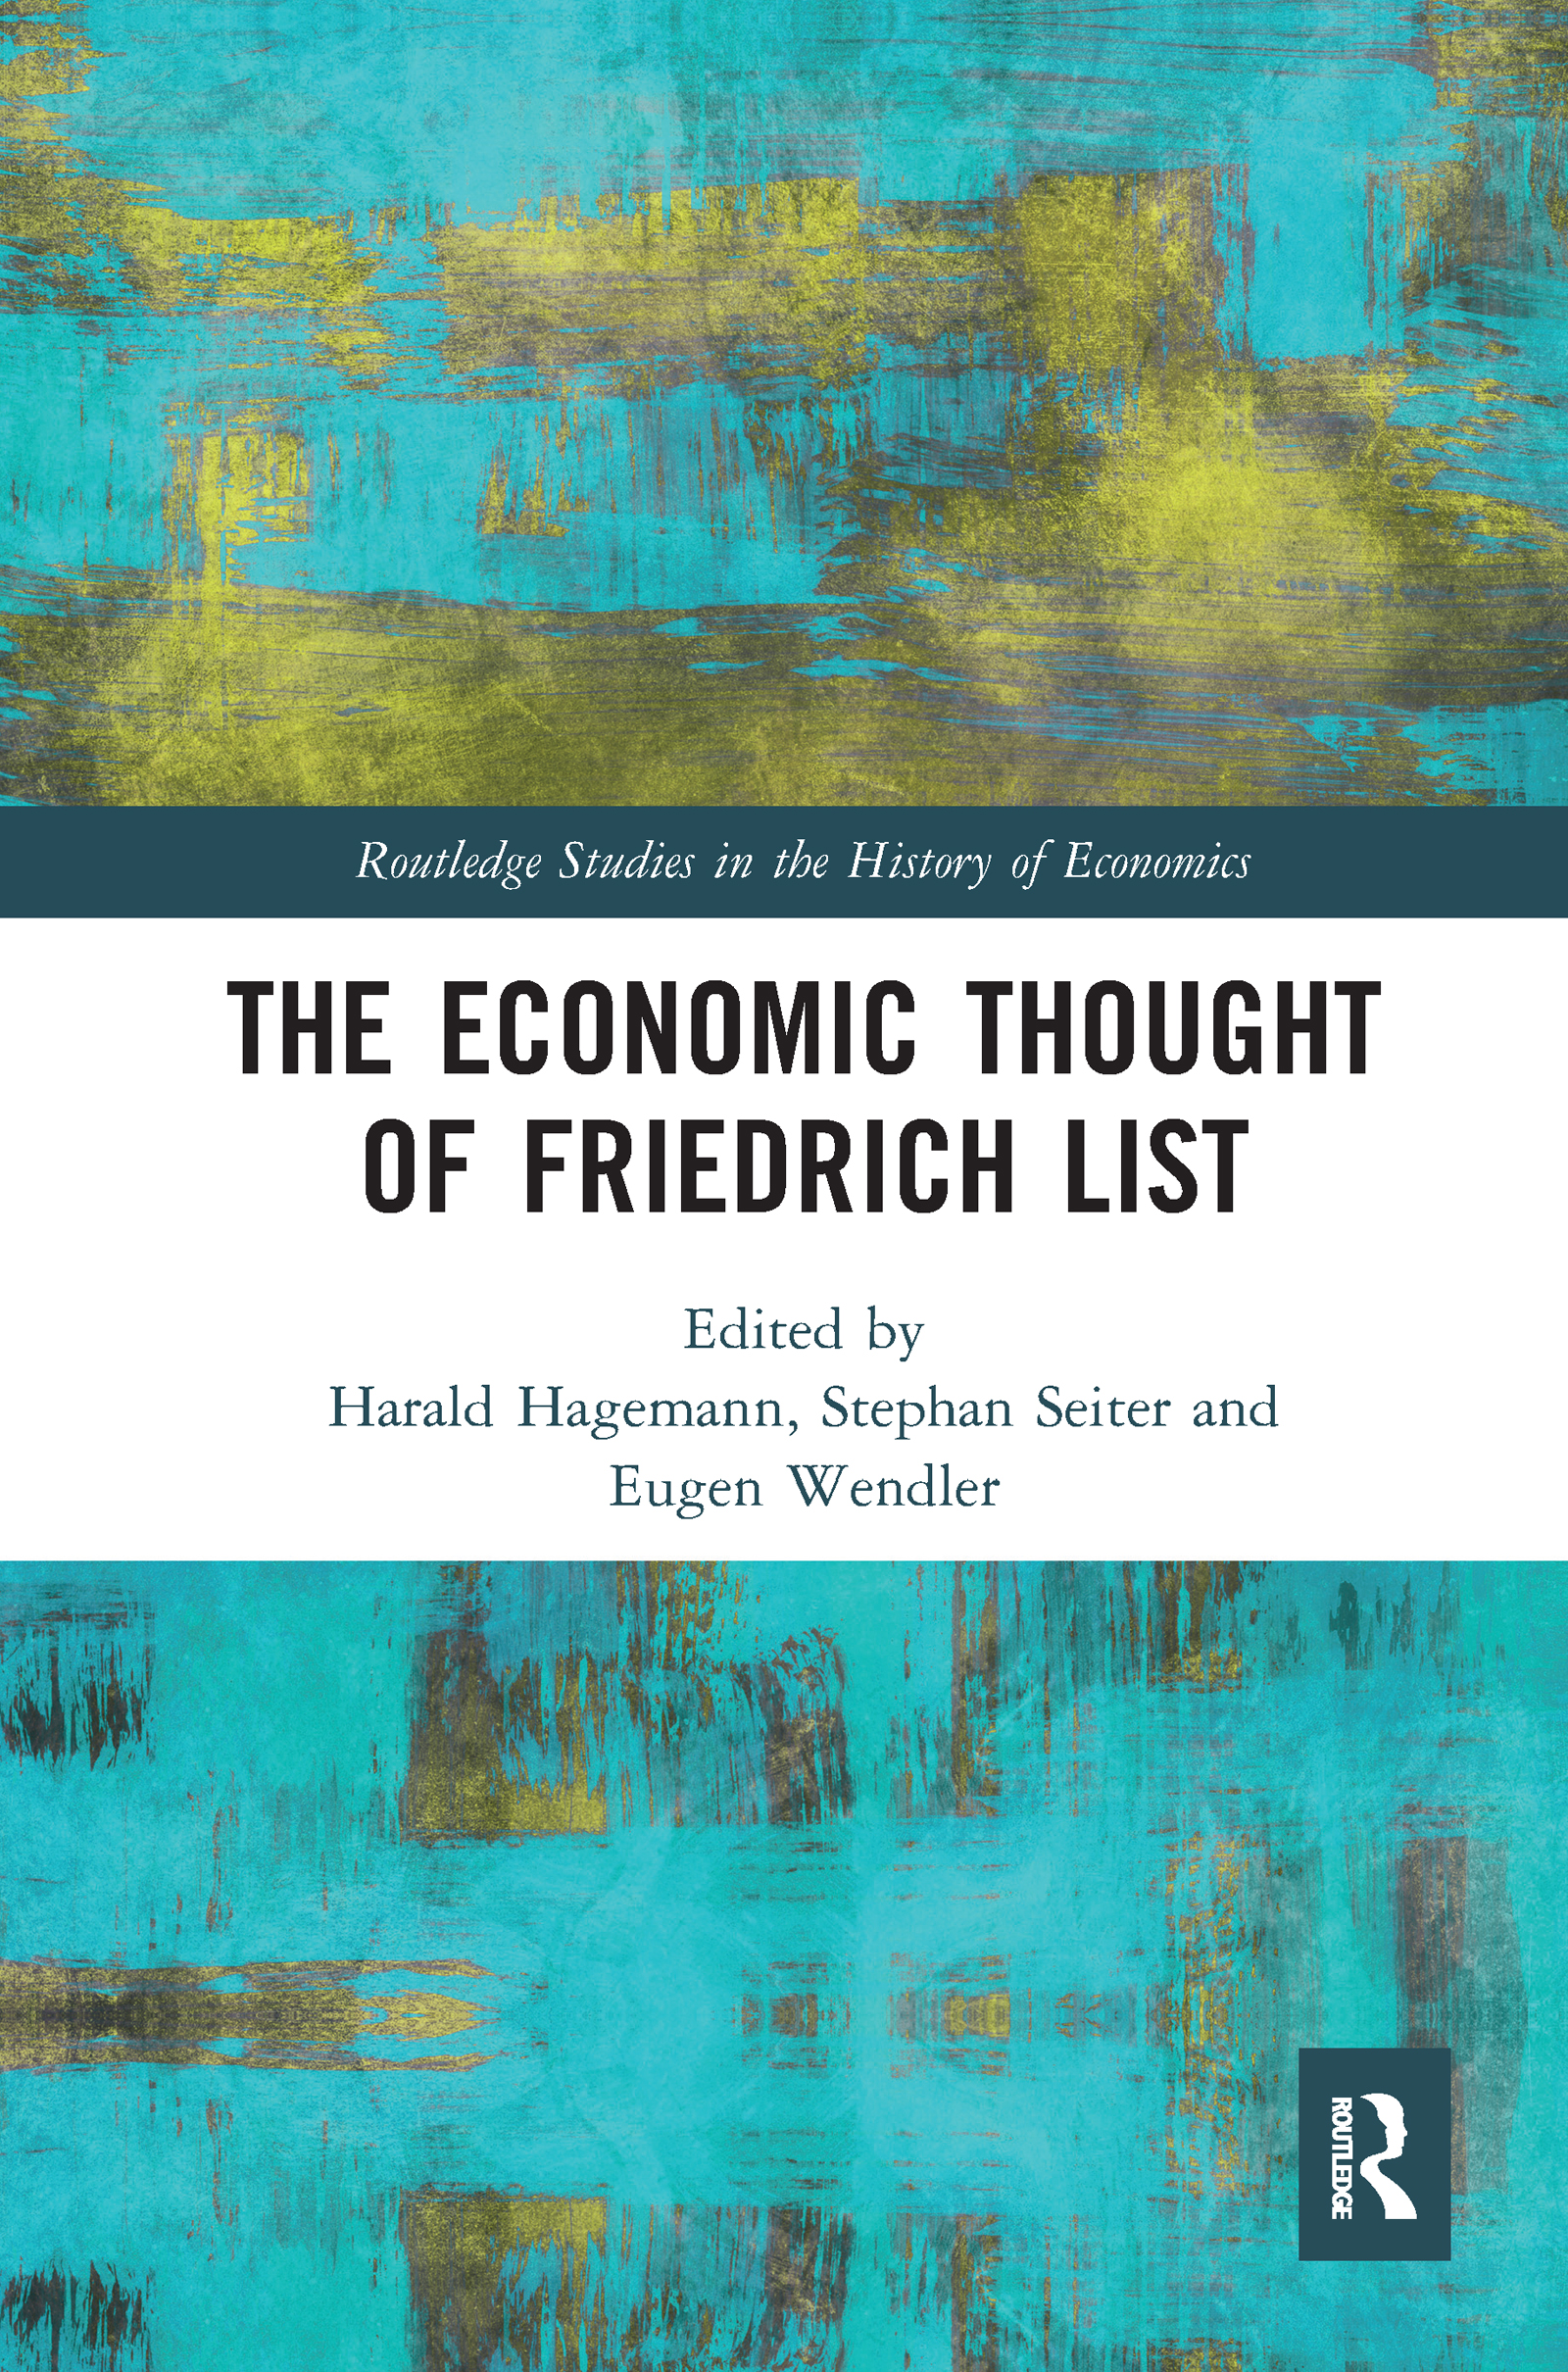 The Economic Thought of Friedrich List